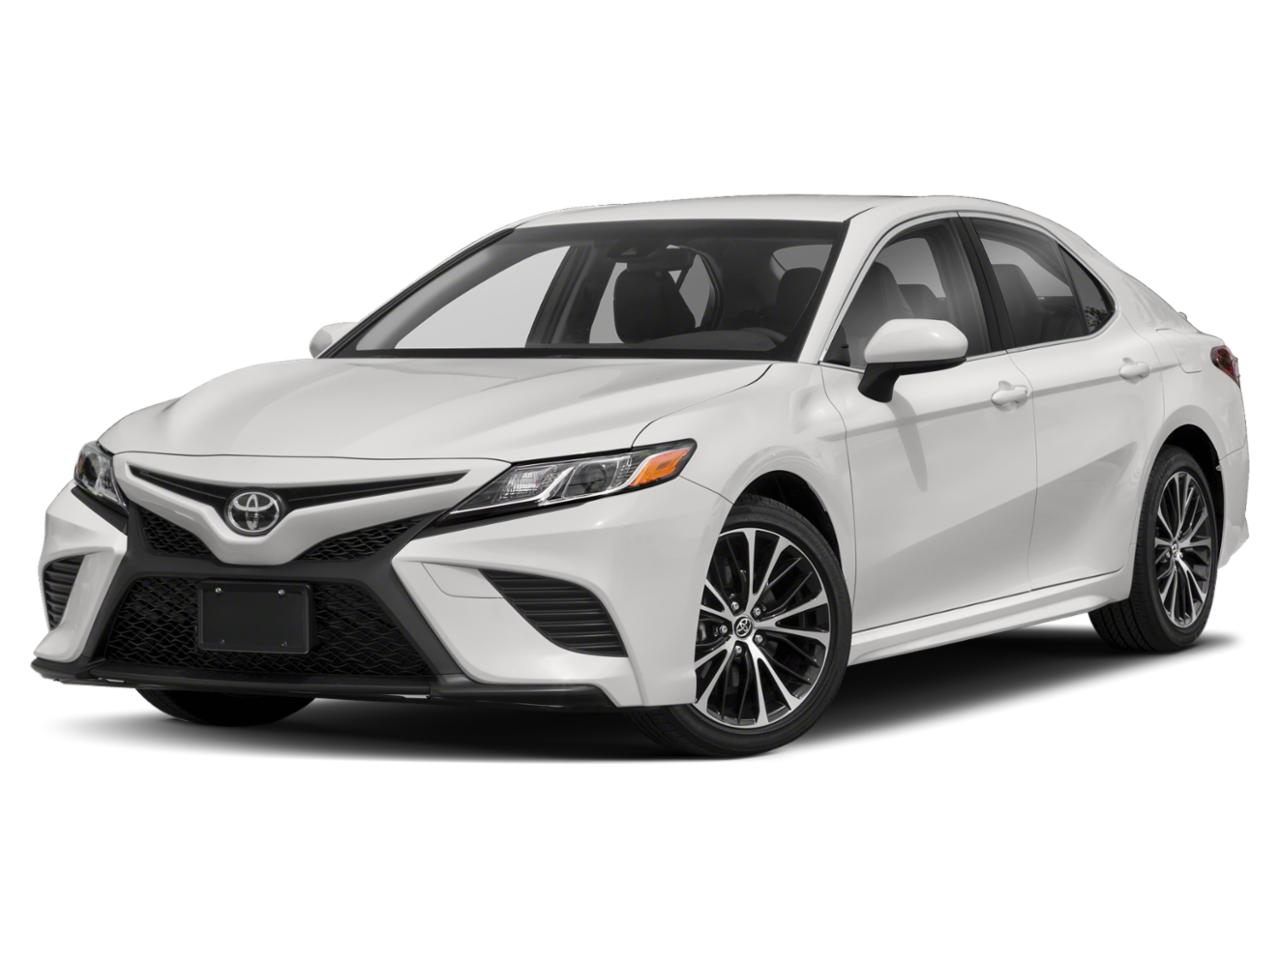 2018 Toyota Camry Vehicle Photo in Owensboro, KY 42303